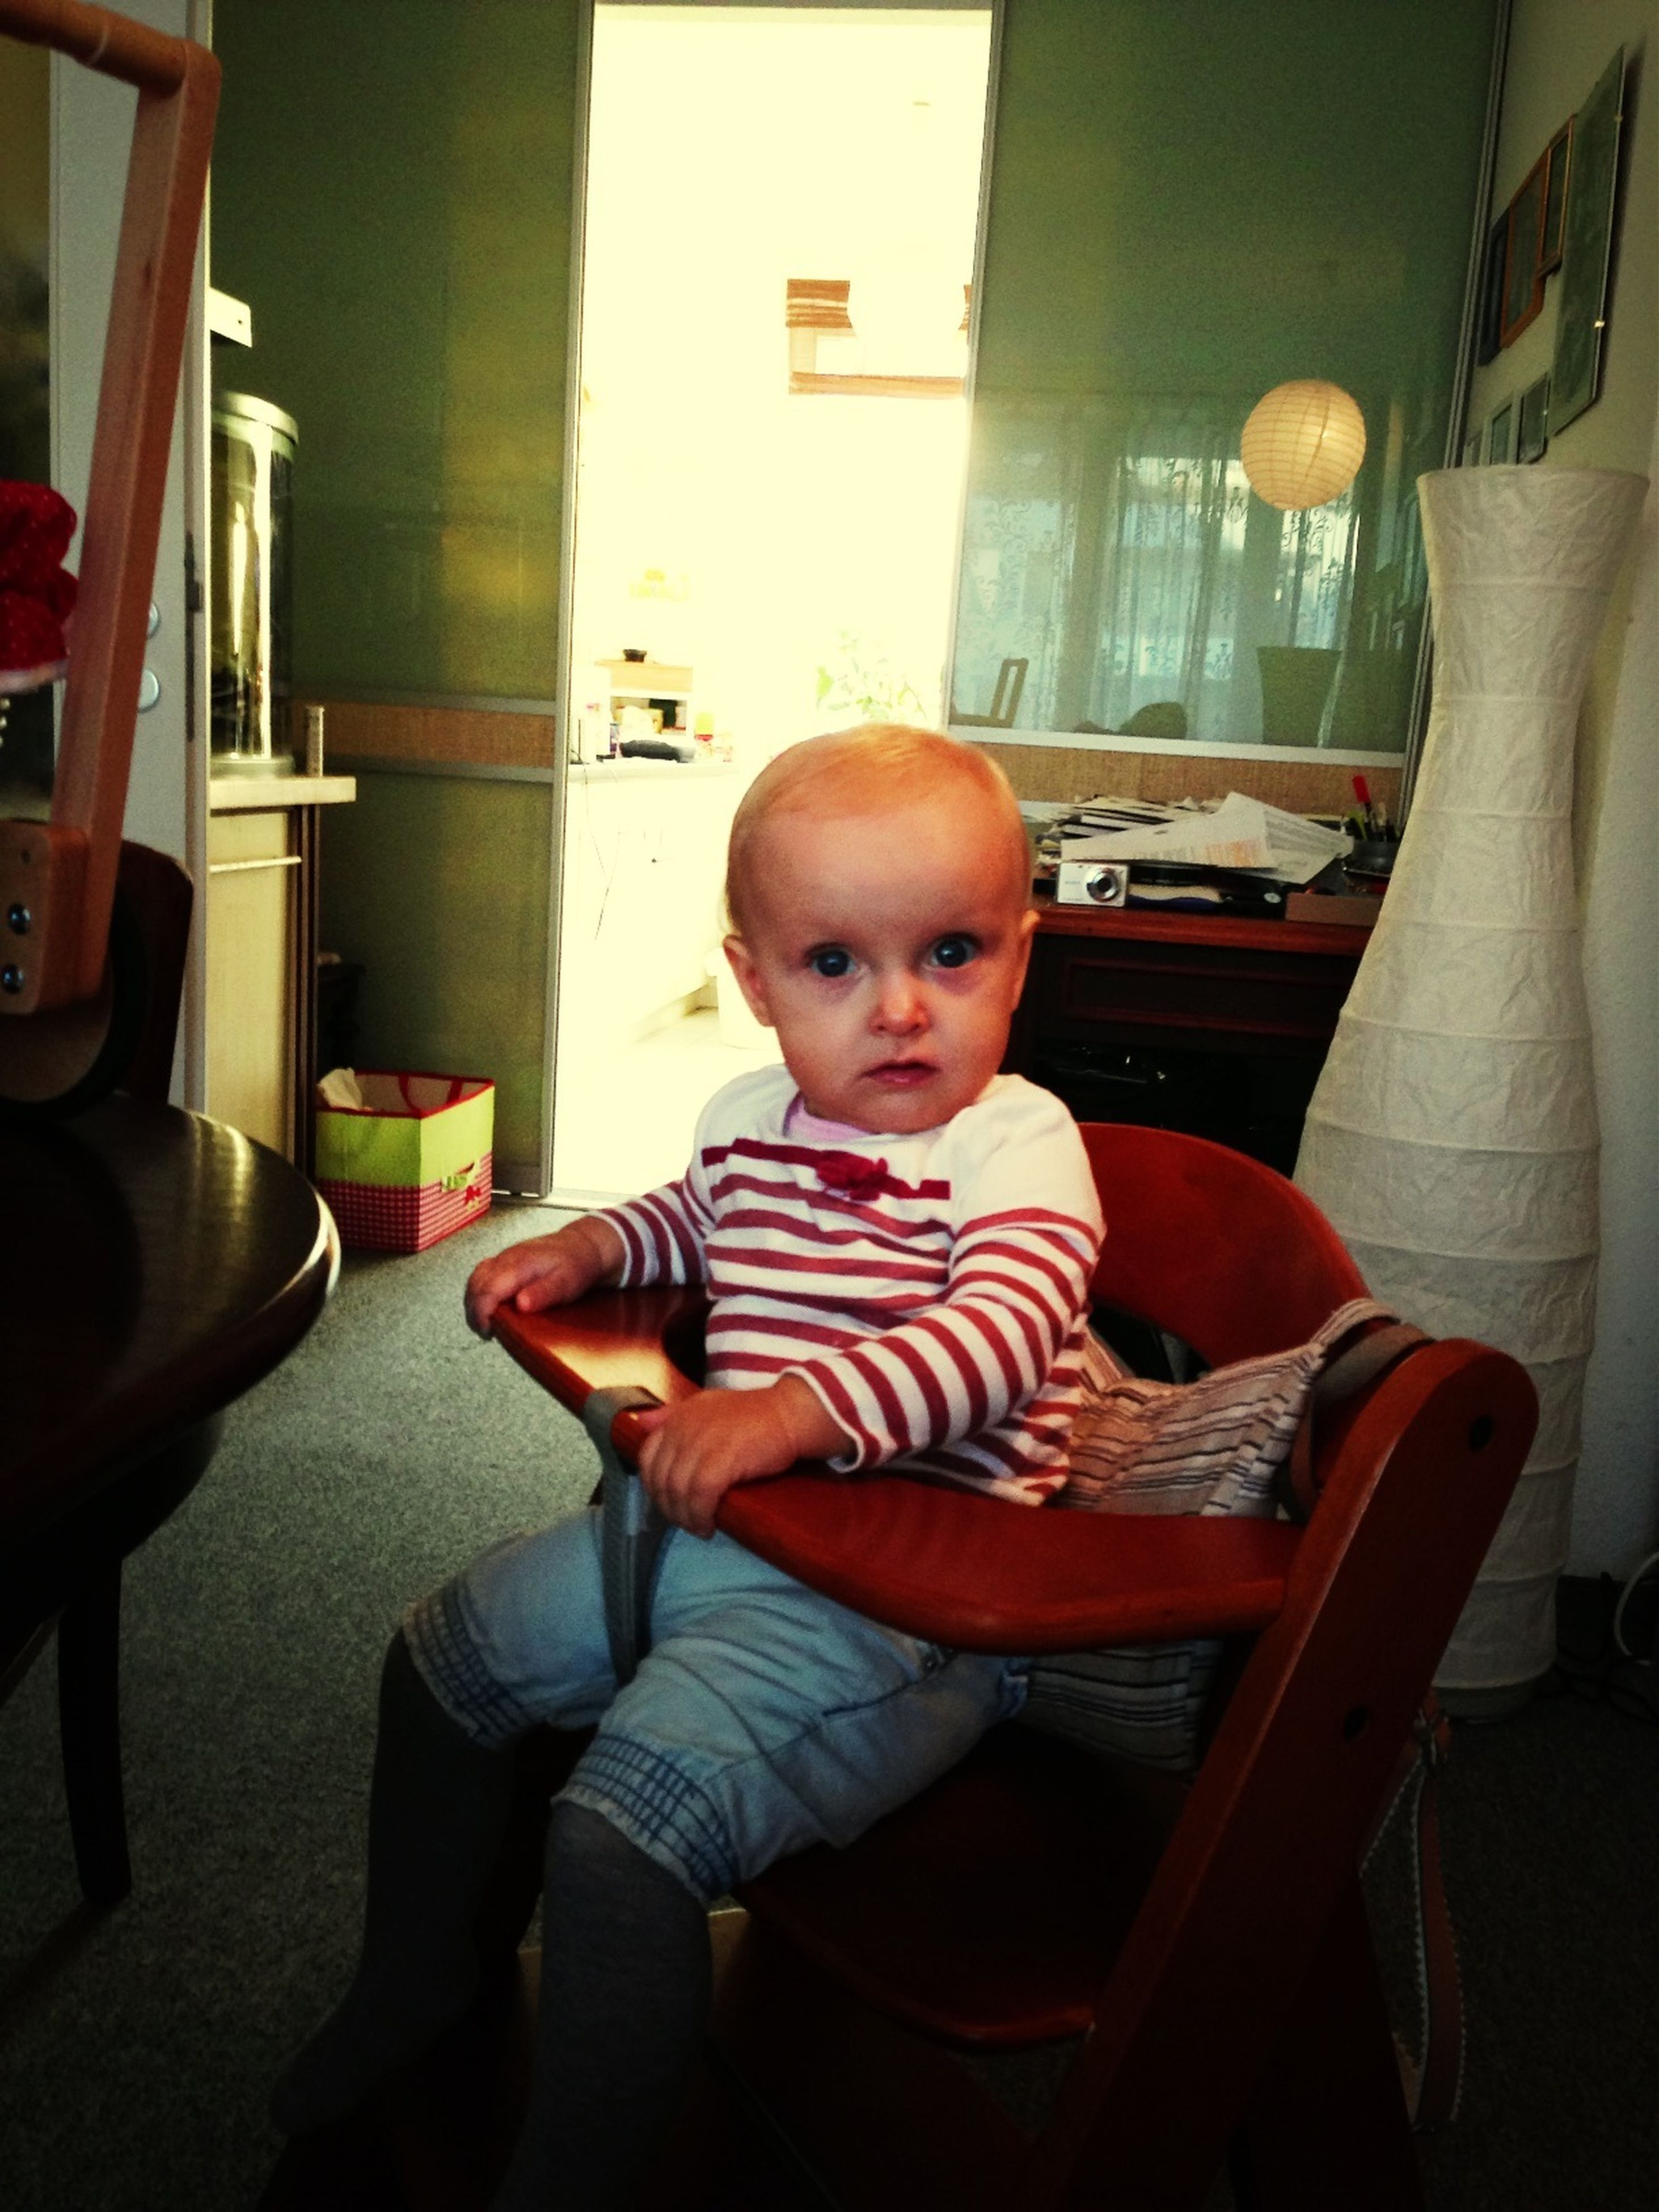 indoors, childhood, person, sitting, elementary age, casual clothing, boys, lifestyles, innocence, home interior, chair, leisure activity, cute, table, girls, front view, toddler, relaxation